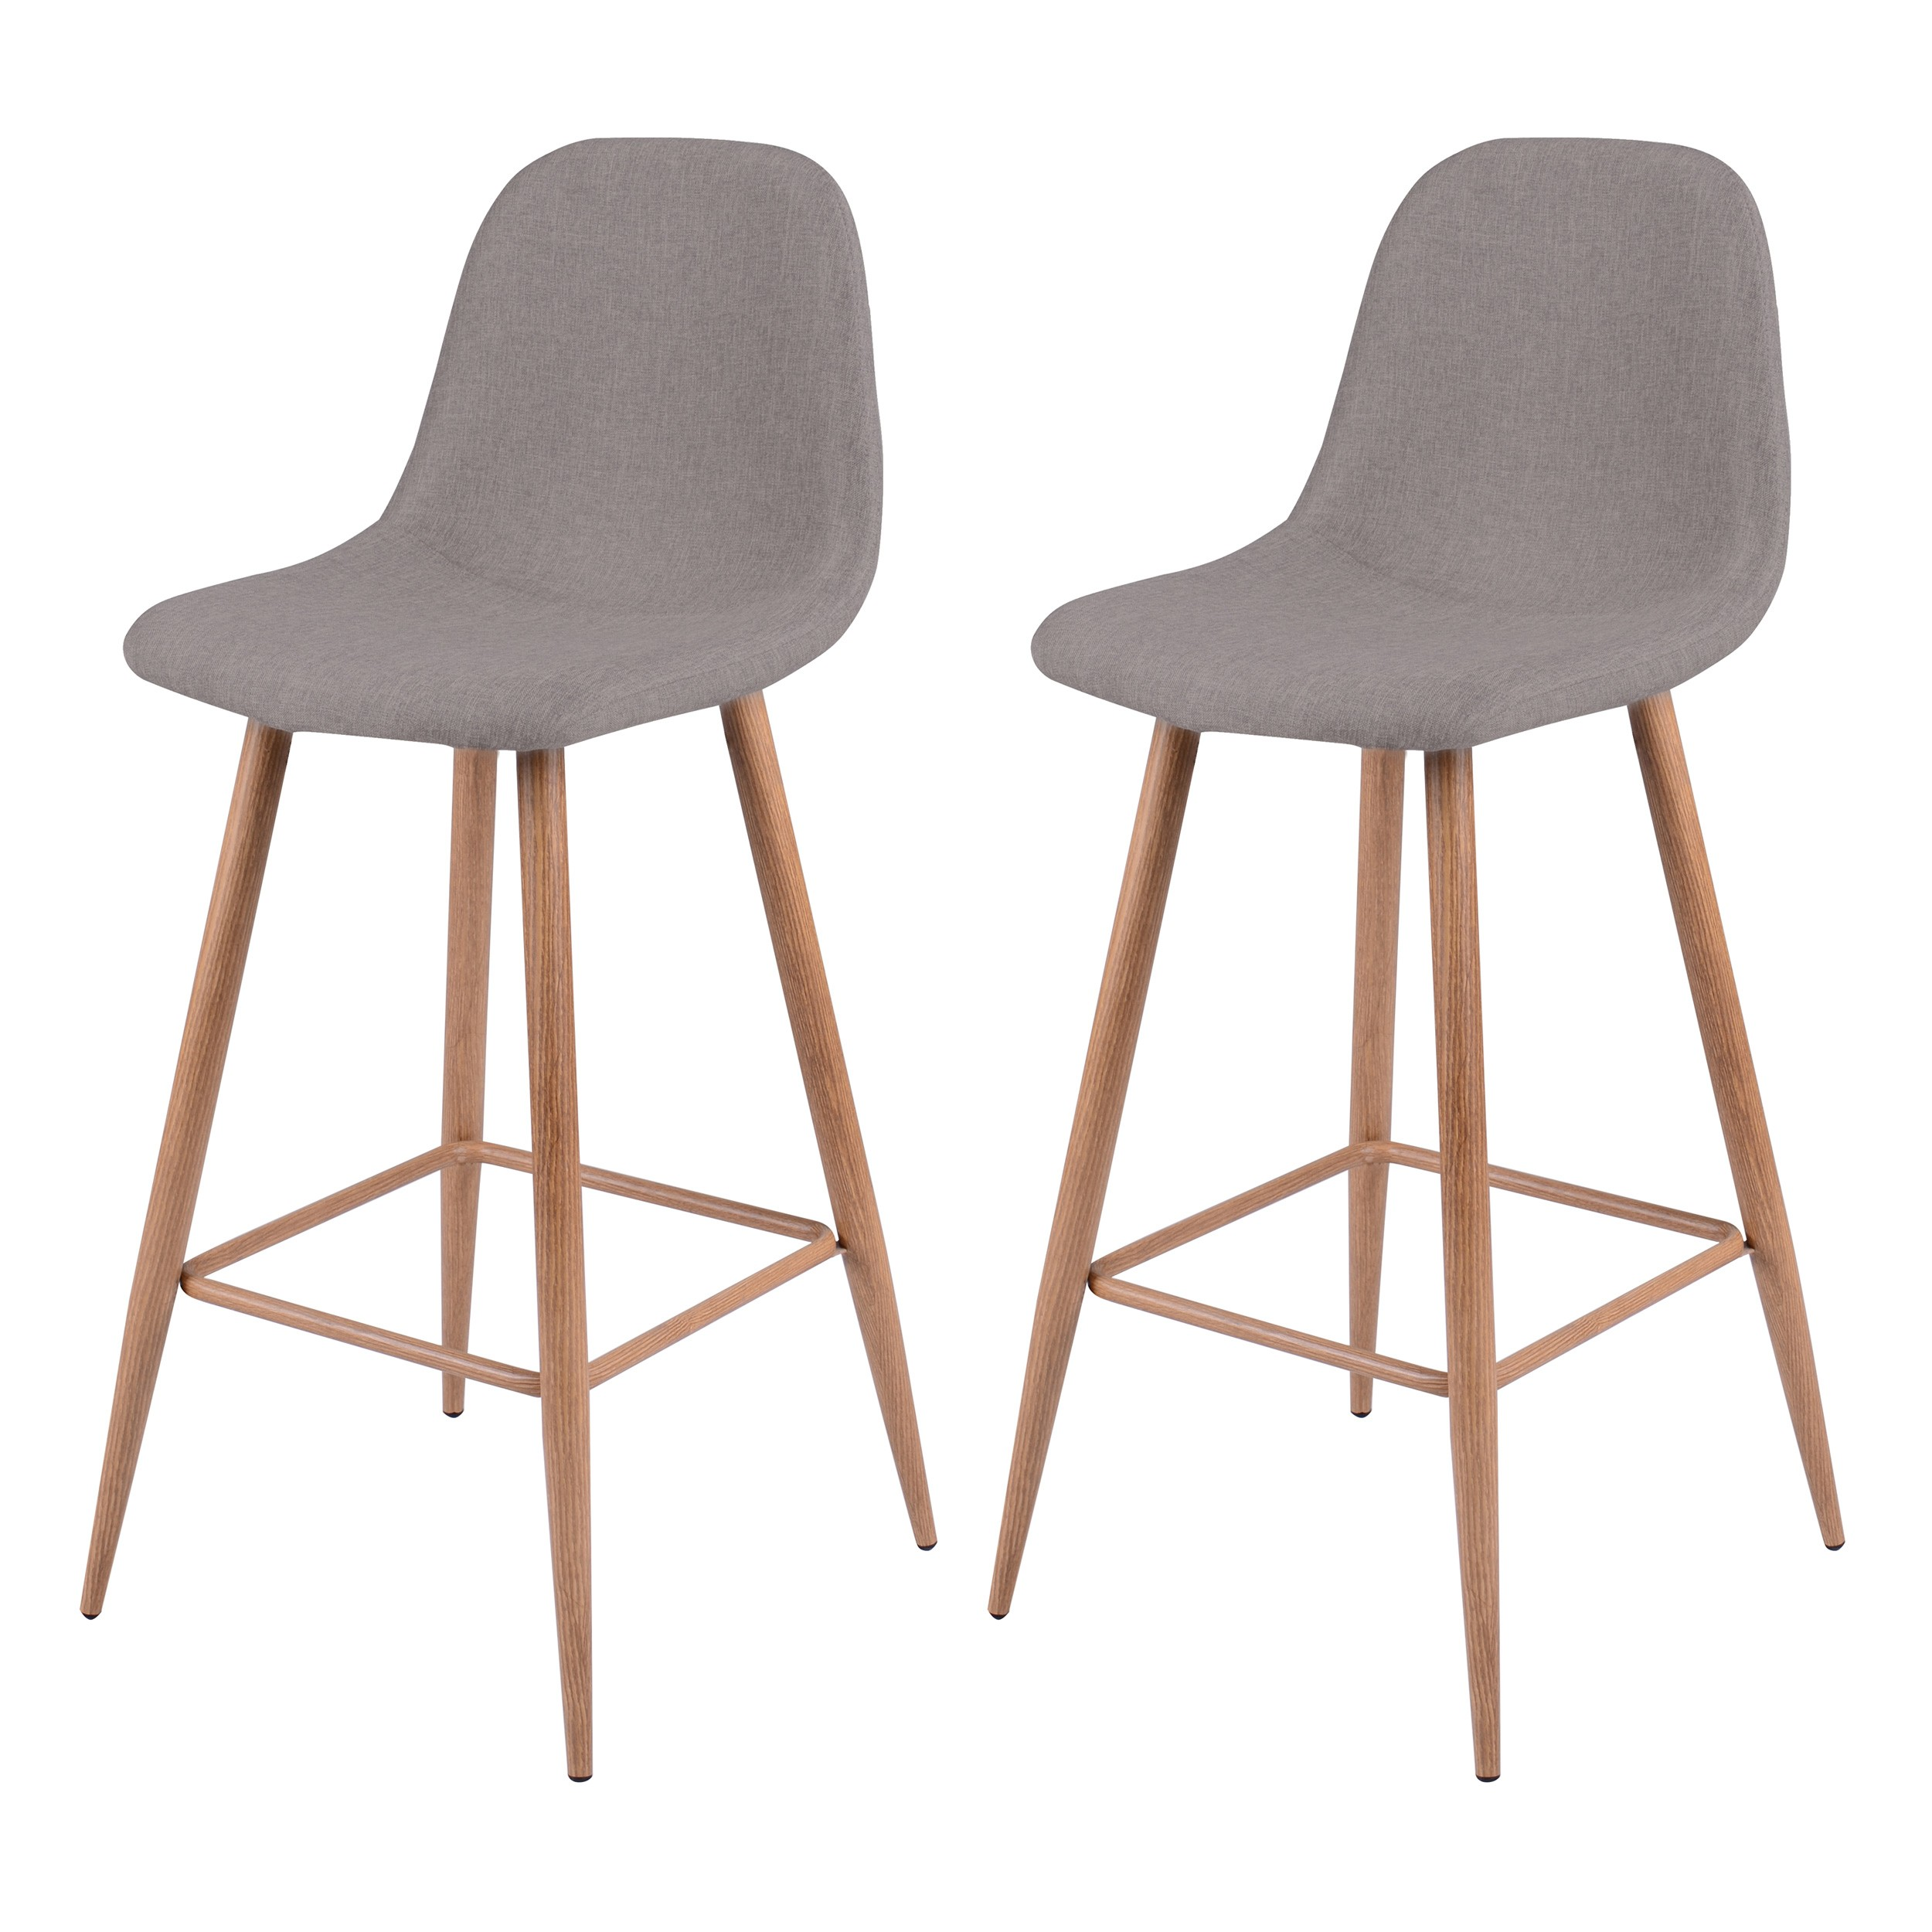 tabouret de bar fredrik taupe lot de 2 choisissez nos tabourets de bar fredrik taupe lot de. Black Bedroom Furniture Sets. Home Design Ideas